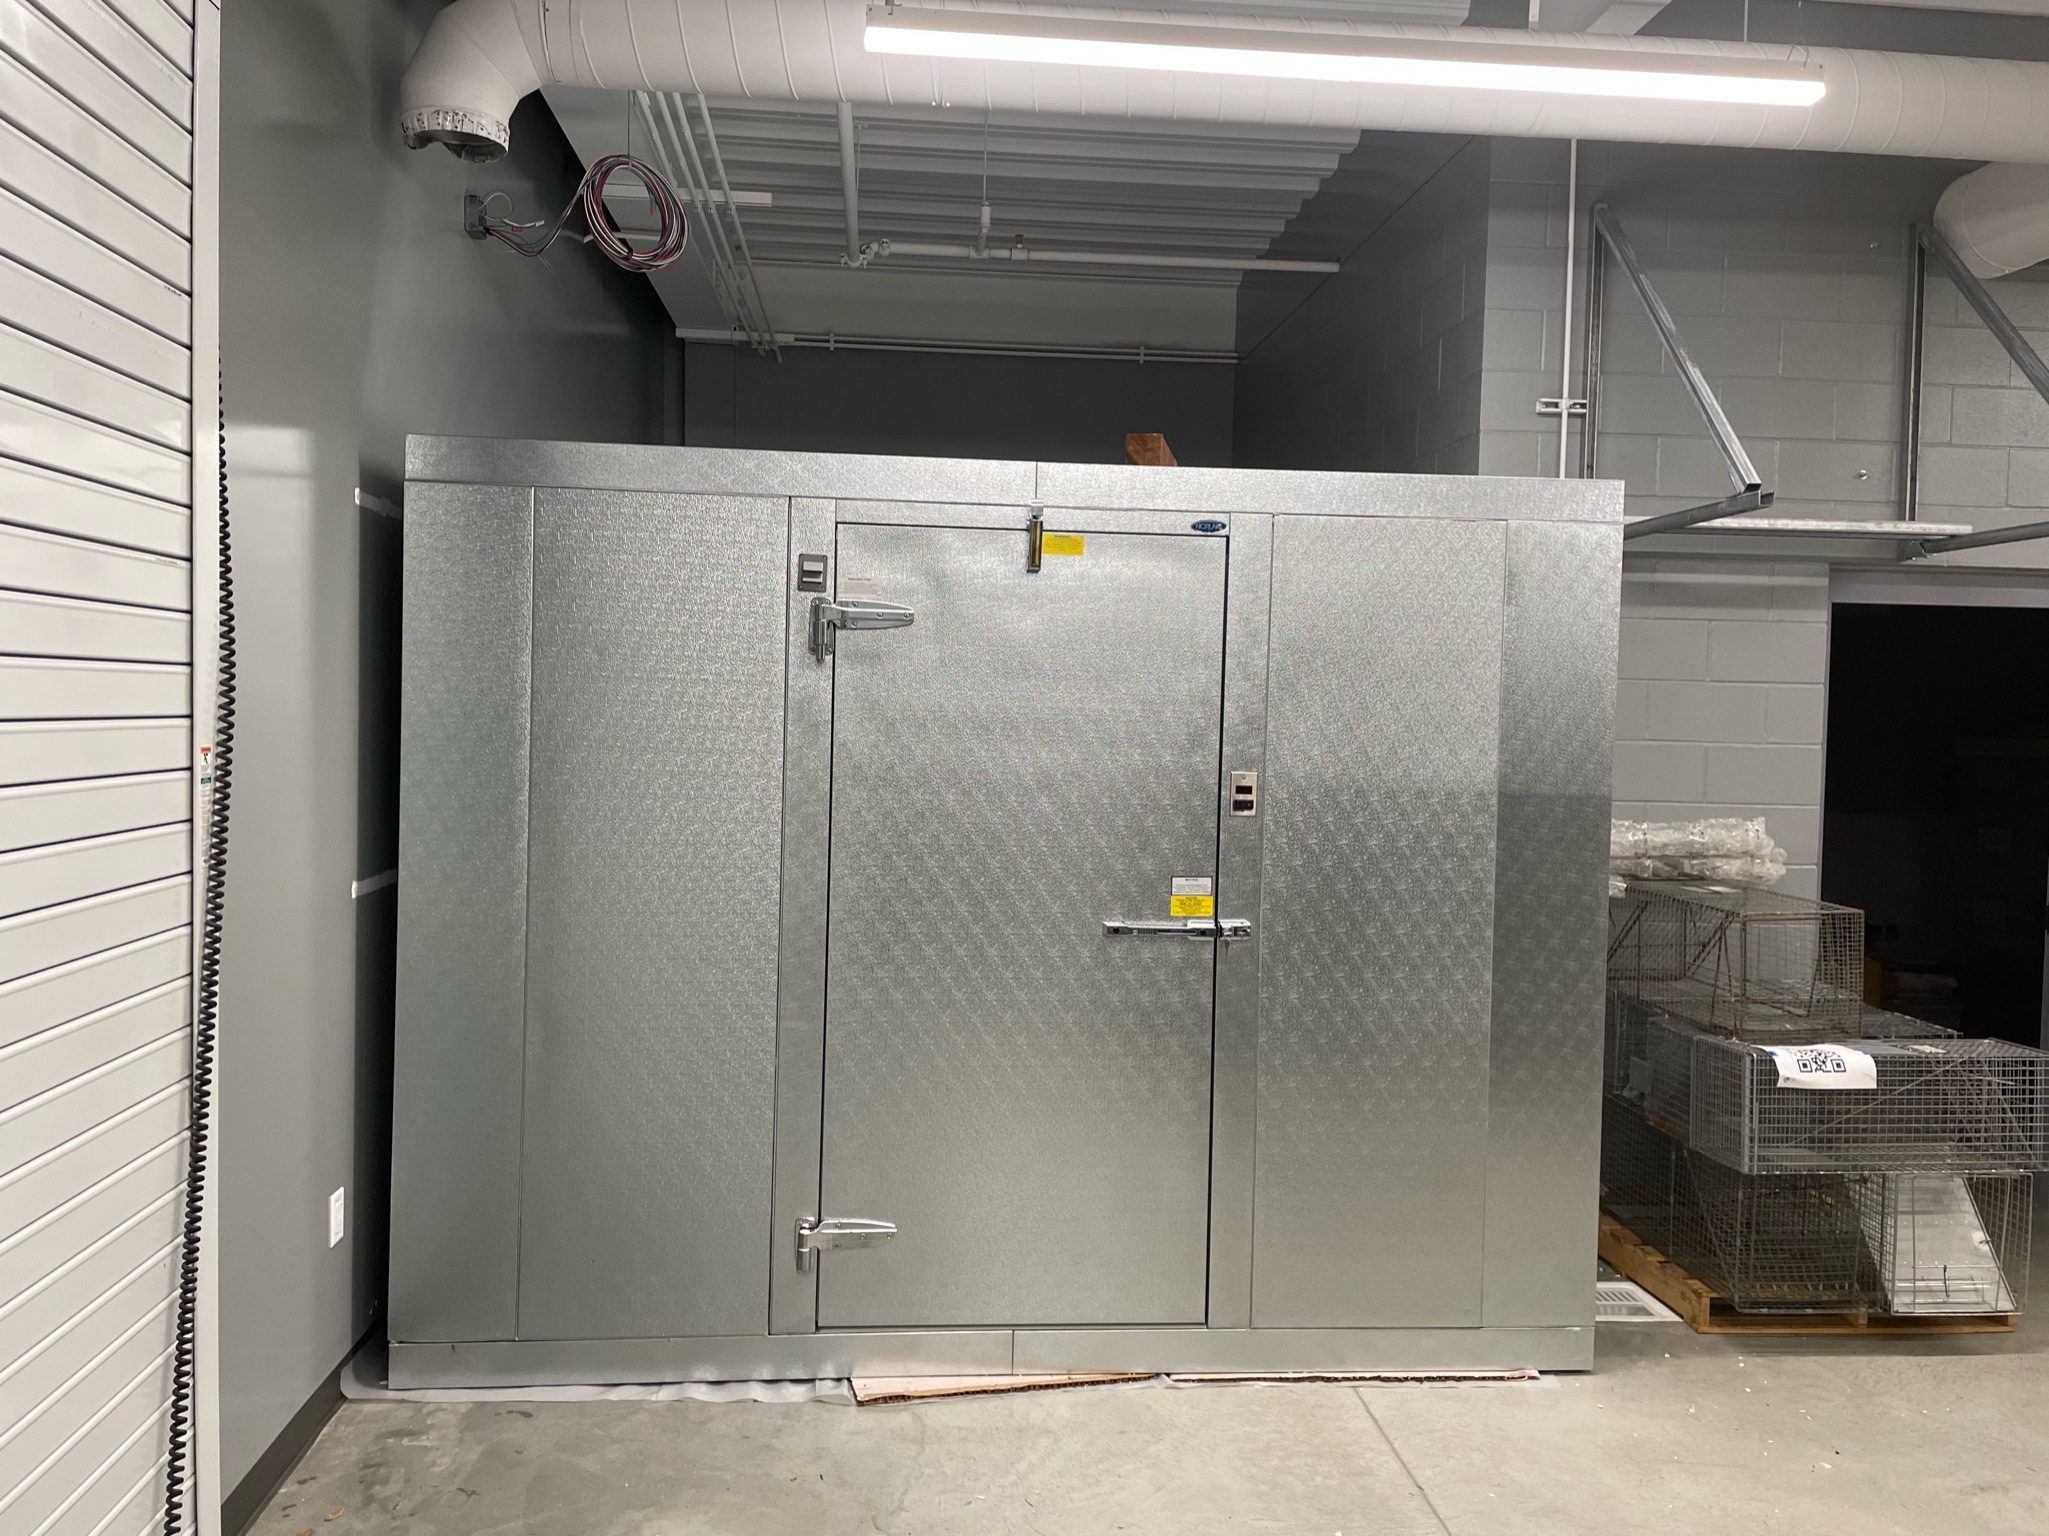 commercial refrigeration services walk in freezer